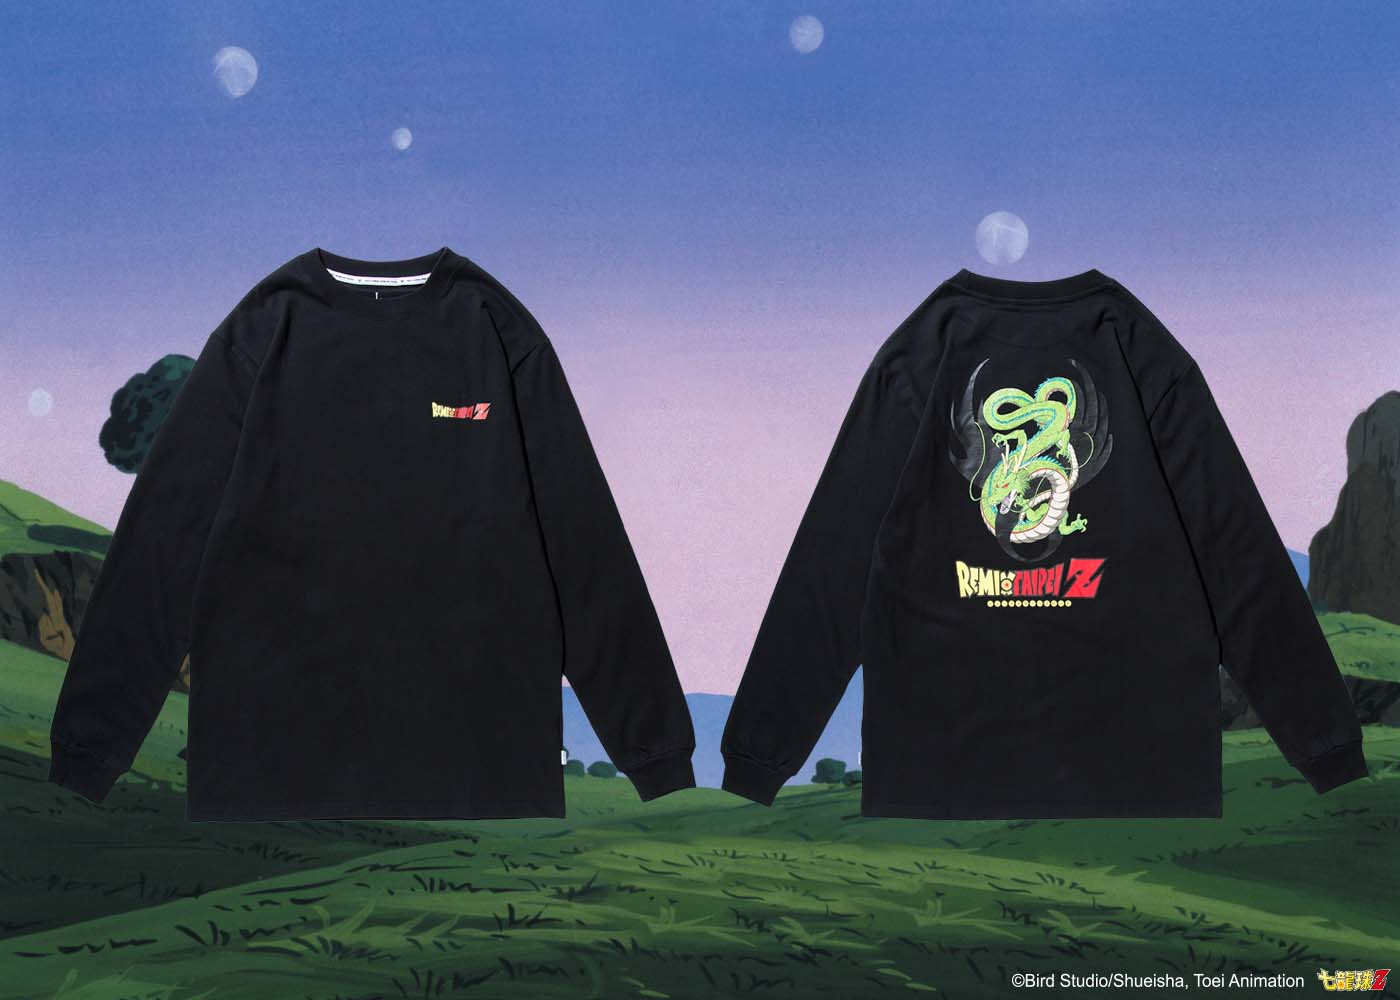 remix-x-dragon-ball-z-capsule-collection3